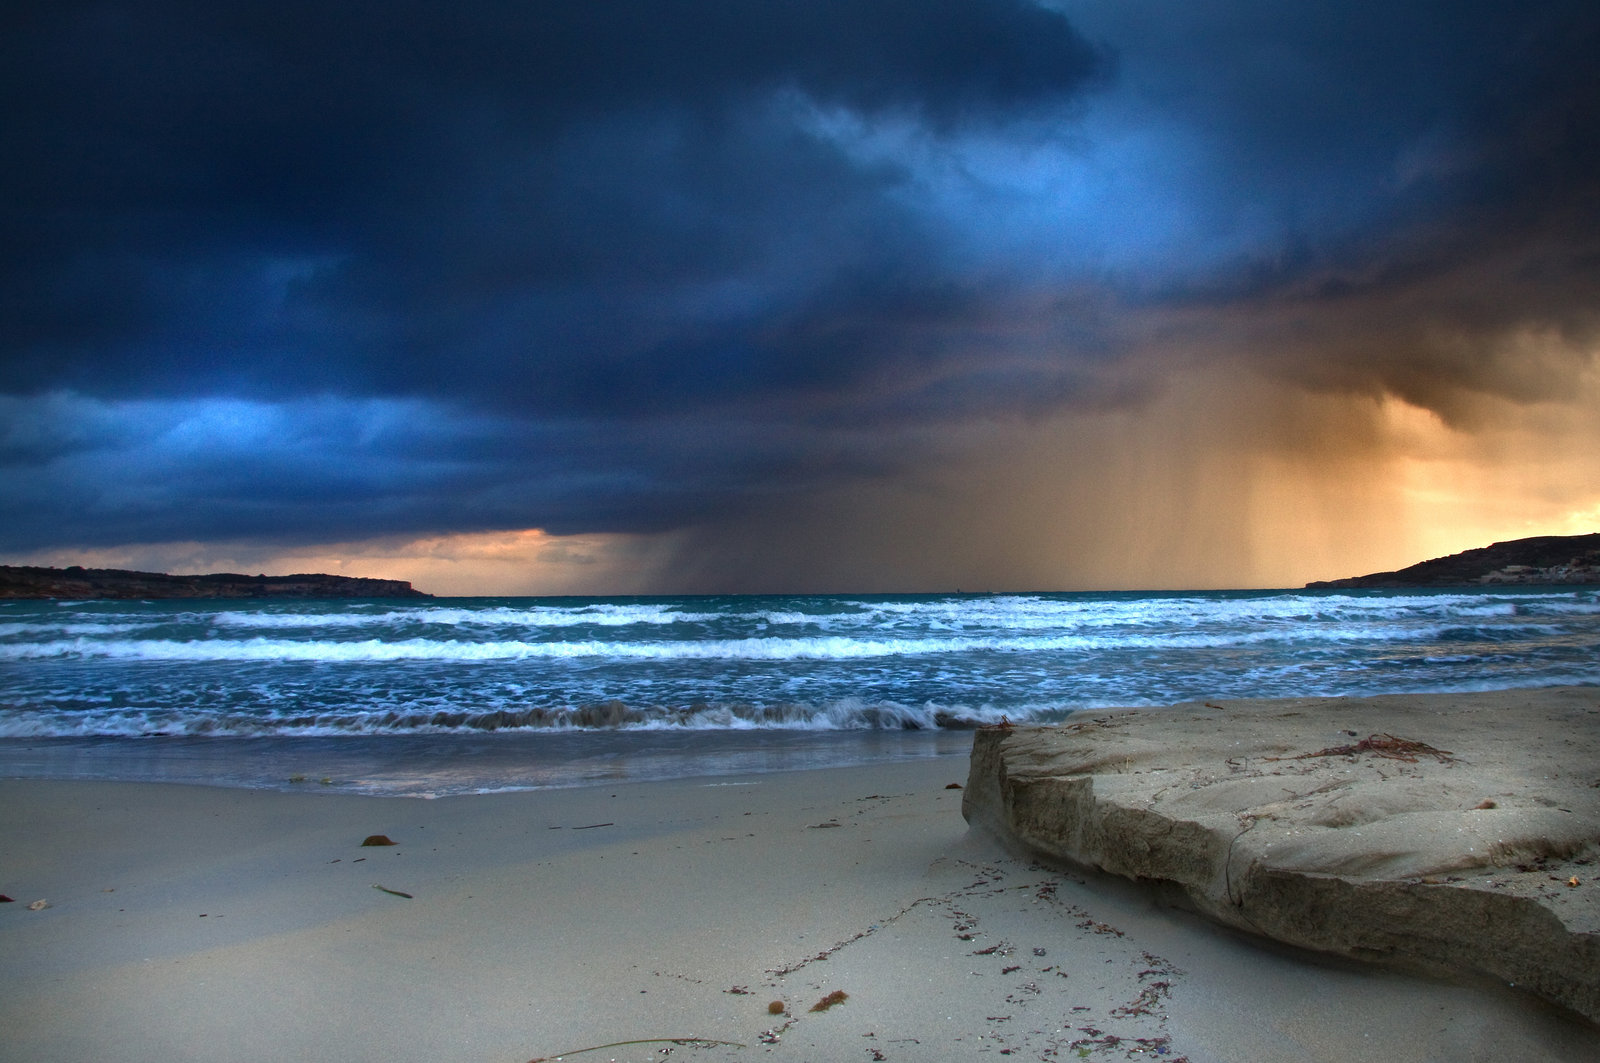 Stormy Beach Wallpaper - WallpaperSafari